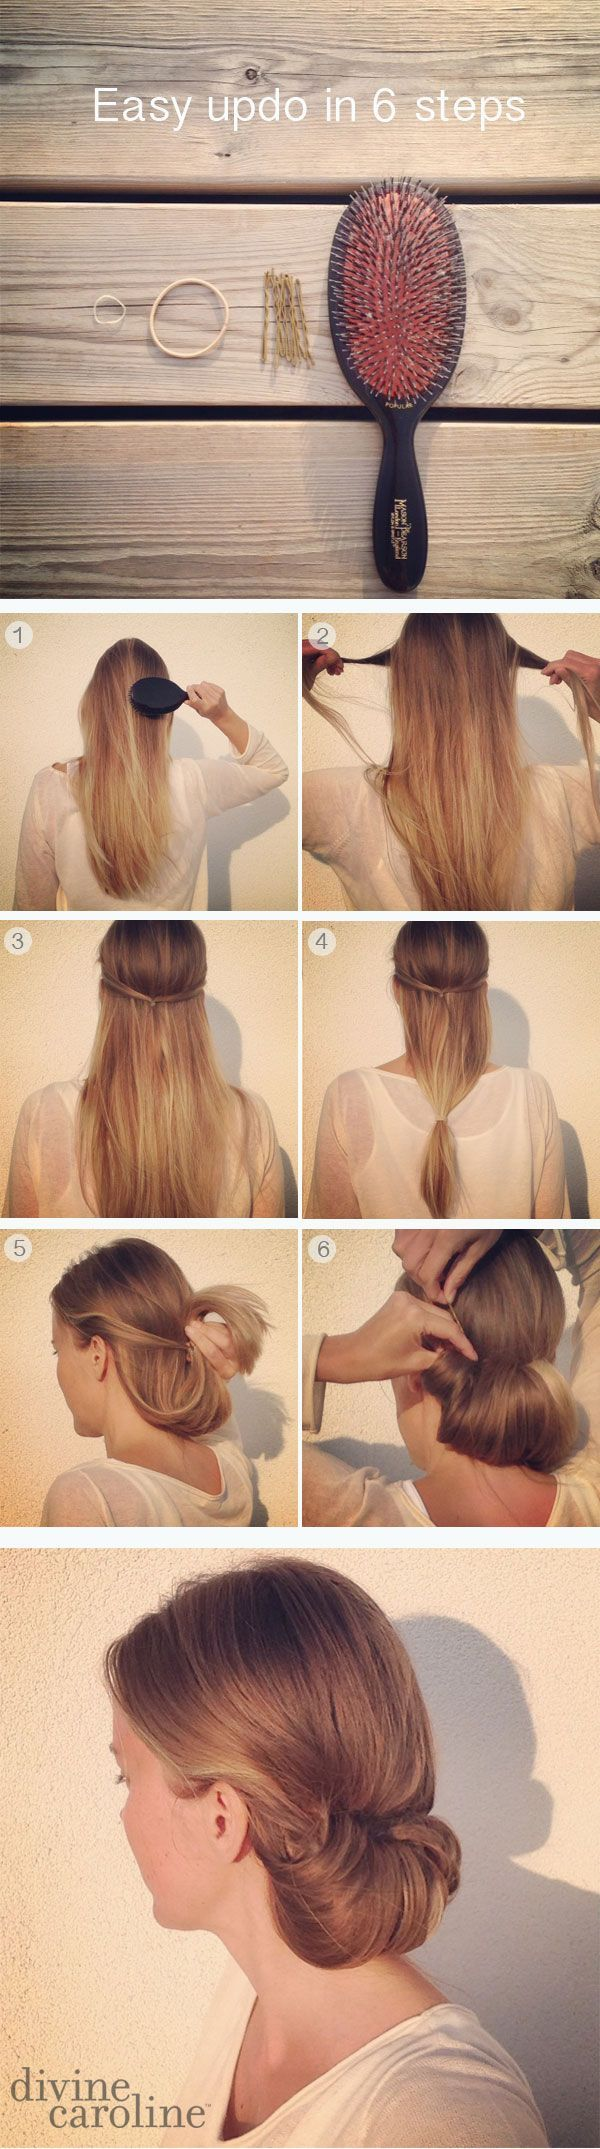 How to Create an Easy Updo